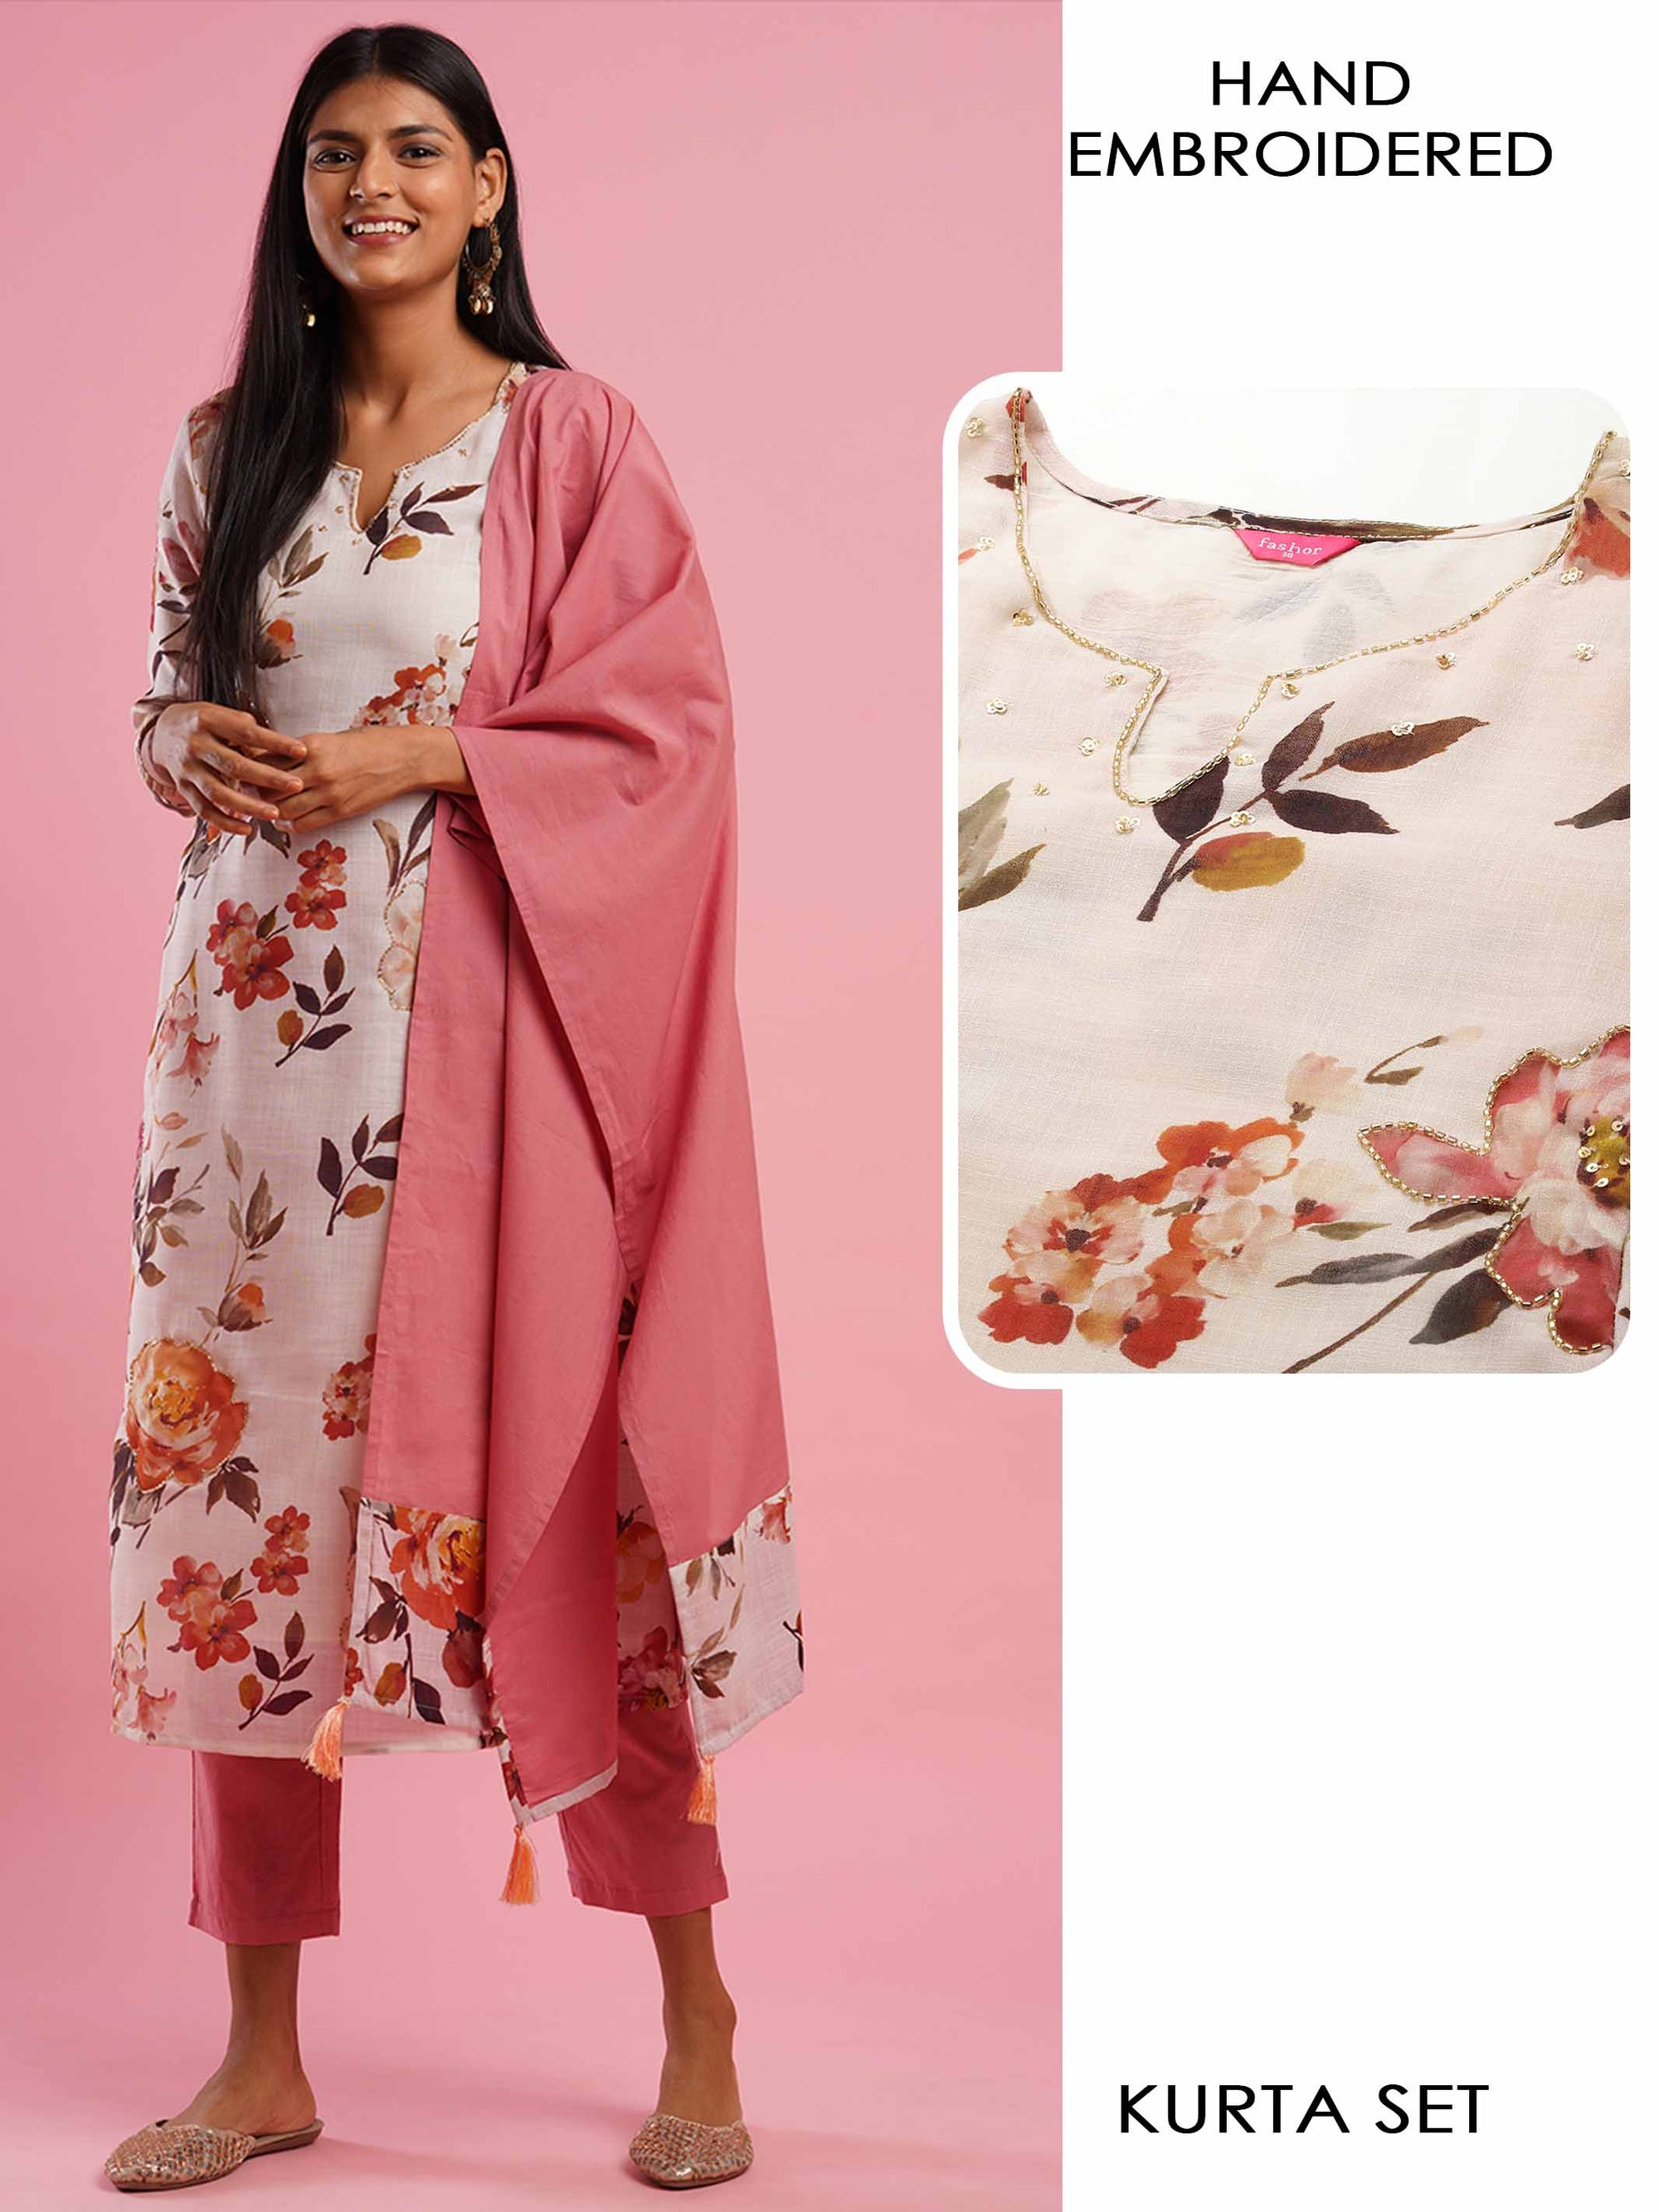 Floral Printed & Hand Embroidered Kurta with Solid Ankle Pant & Solid Dupatta - Off White